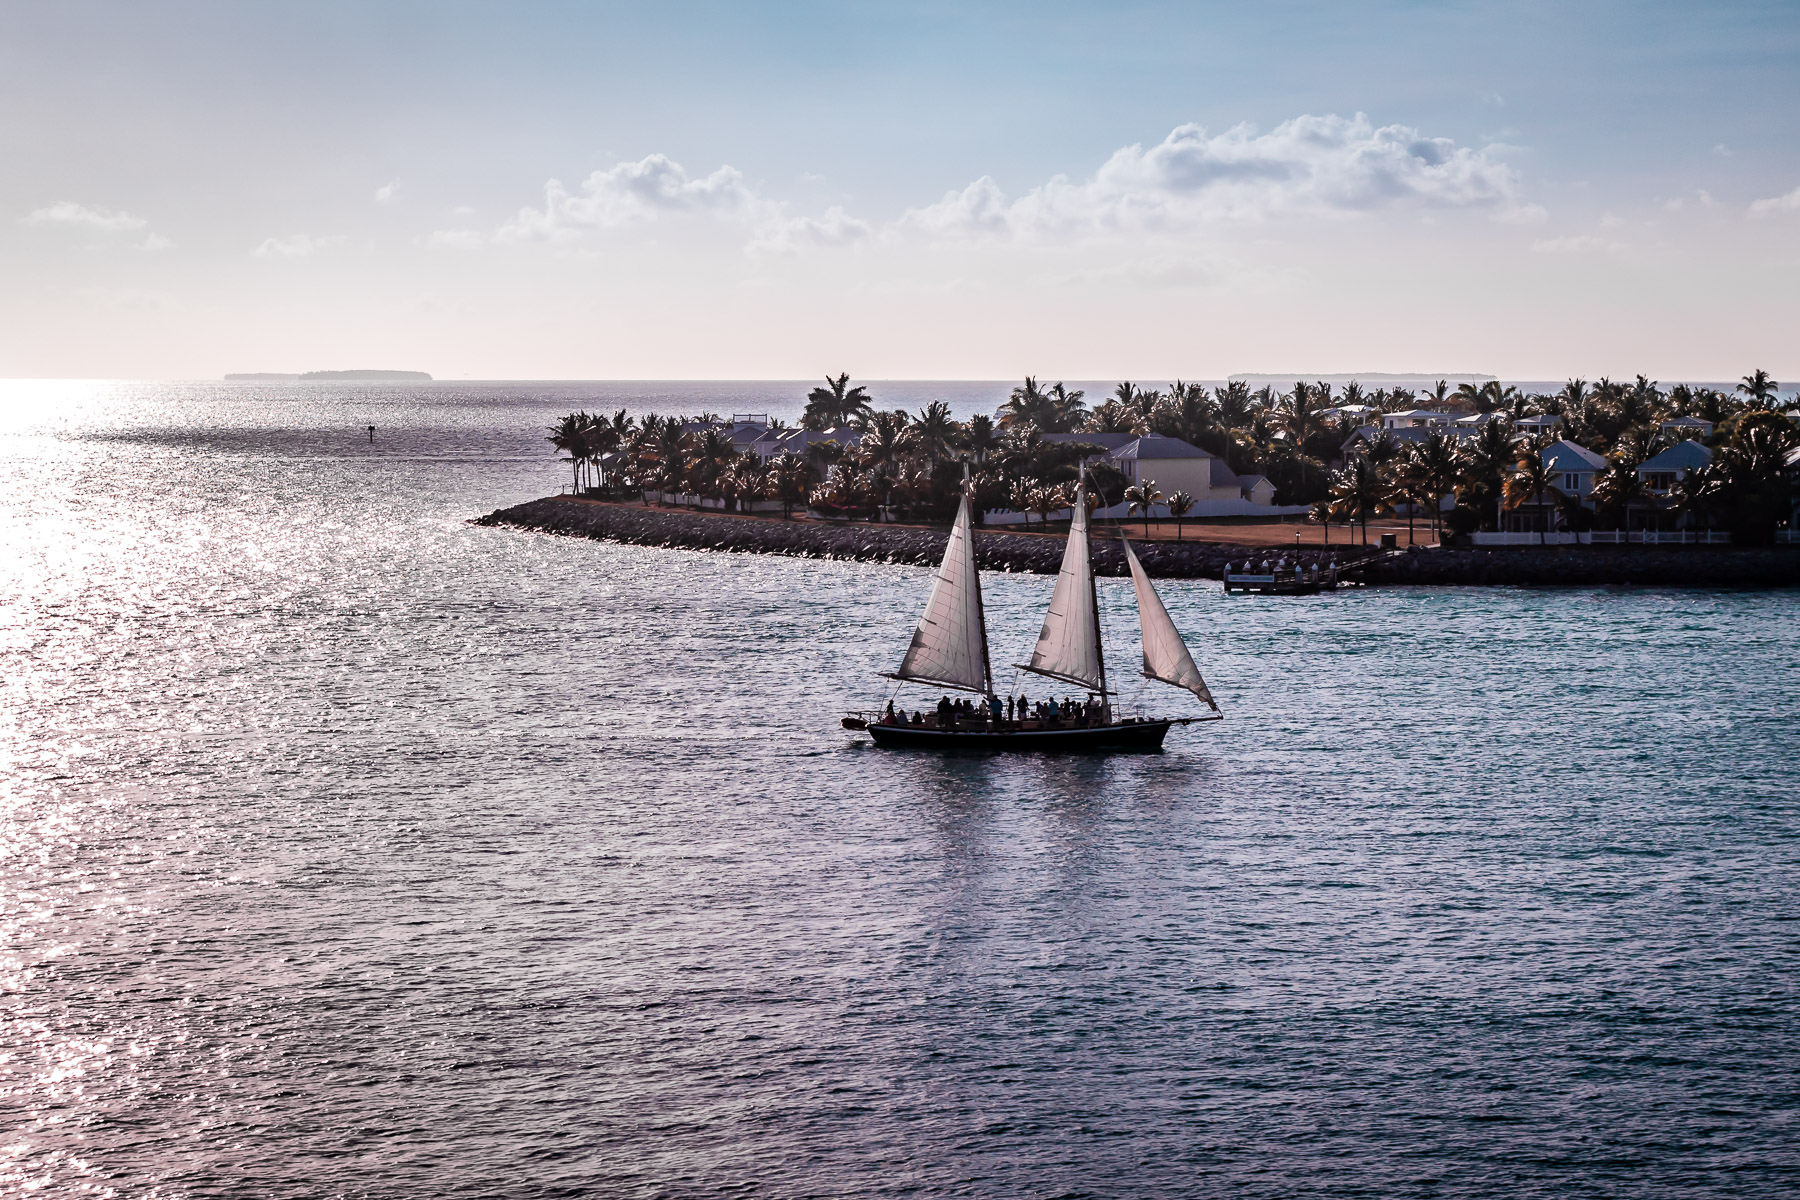 A sailboat sails into the harbor at Key West, Florida.